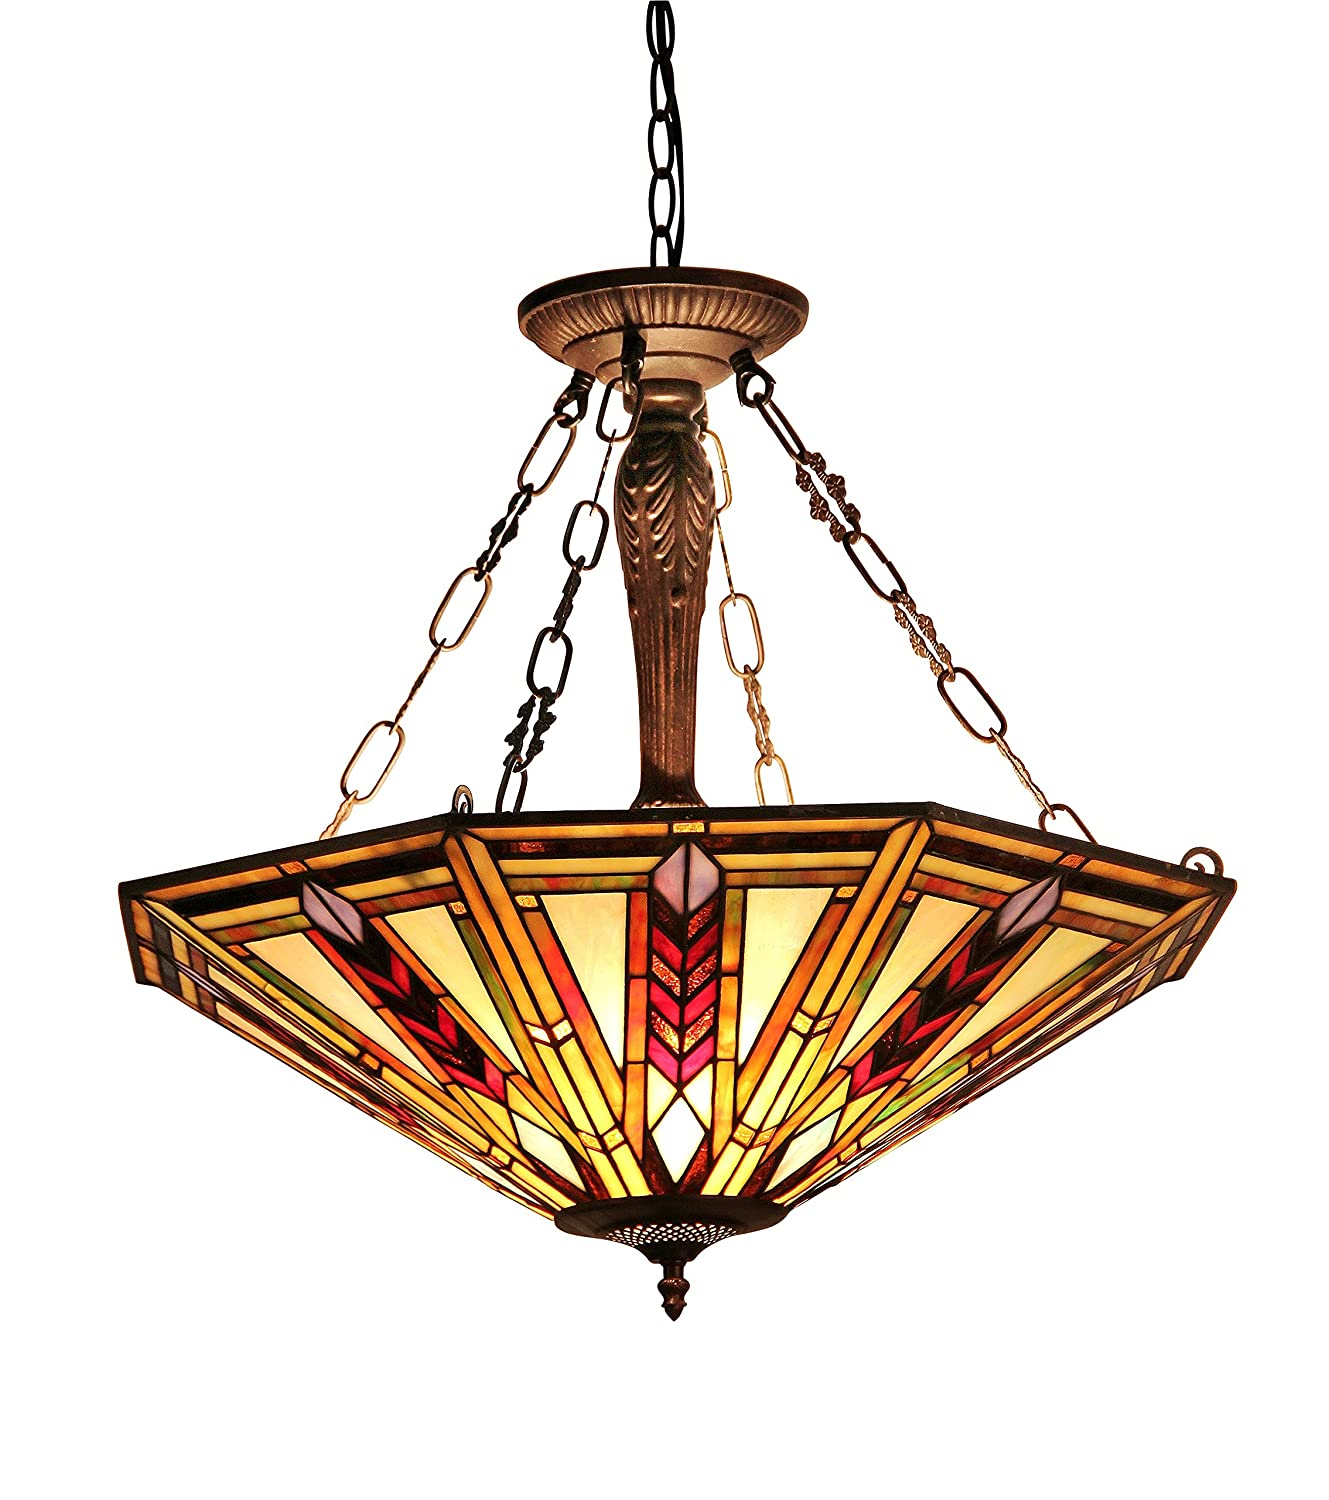 Chloe Lighting CH35001RM25-UH3 Moasic Jayden, Tiffany-style Mission 3 Light Inverted Ceiling Pendant Fixture 25-Inch Shade,Multi-colored